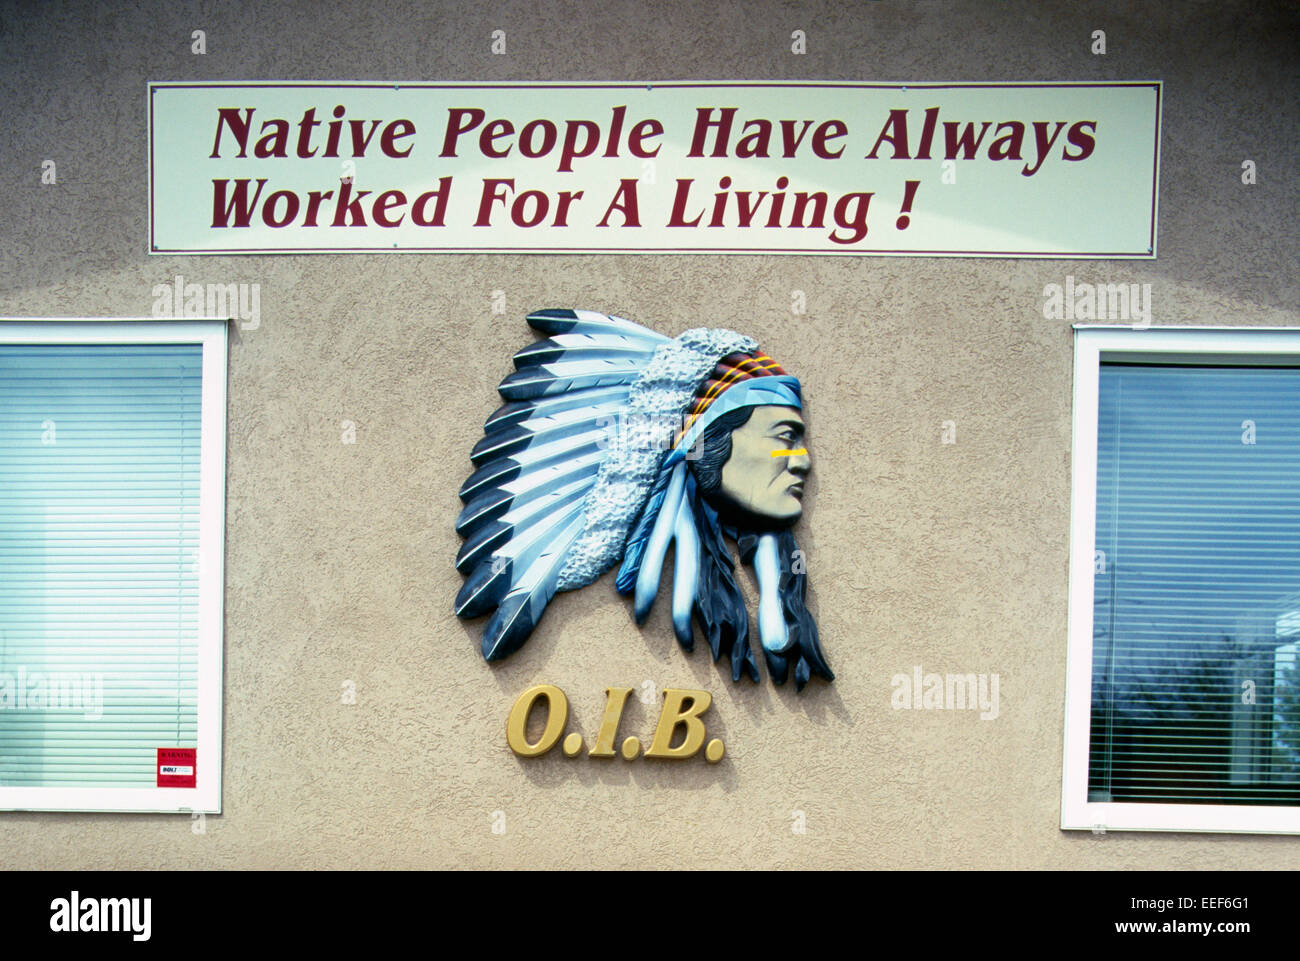 Sign in Native Indian Band Office - Native People Have Always Worked For A Living - Stock Image